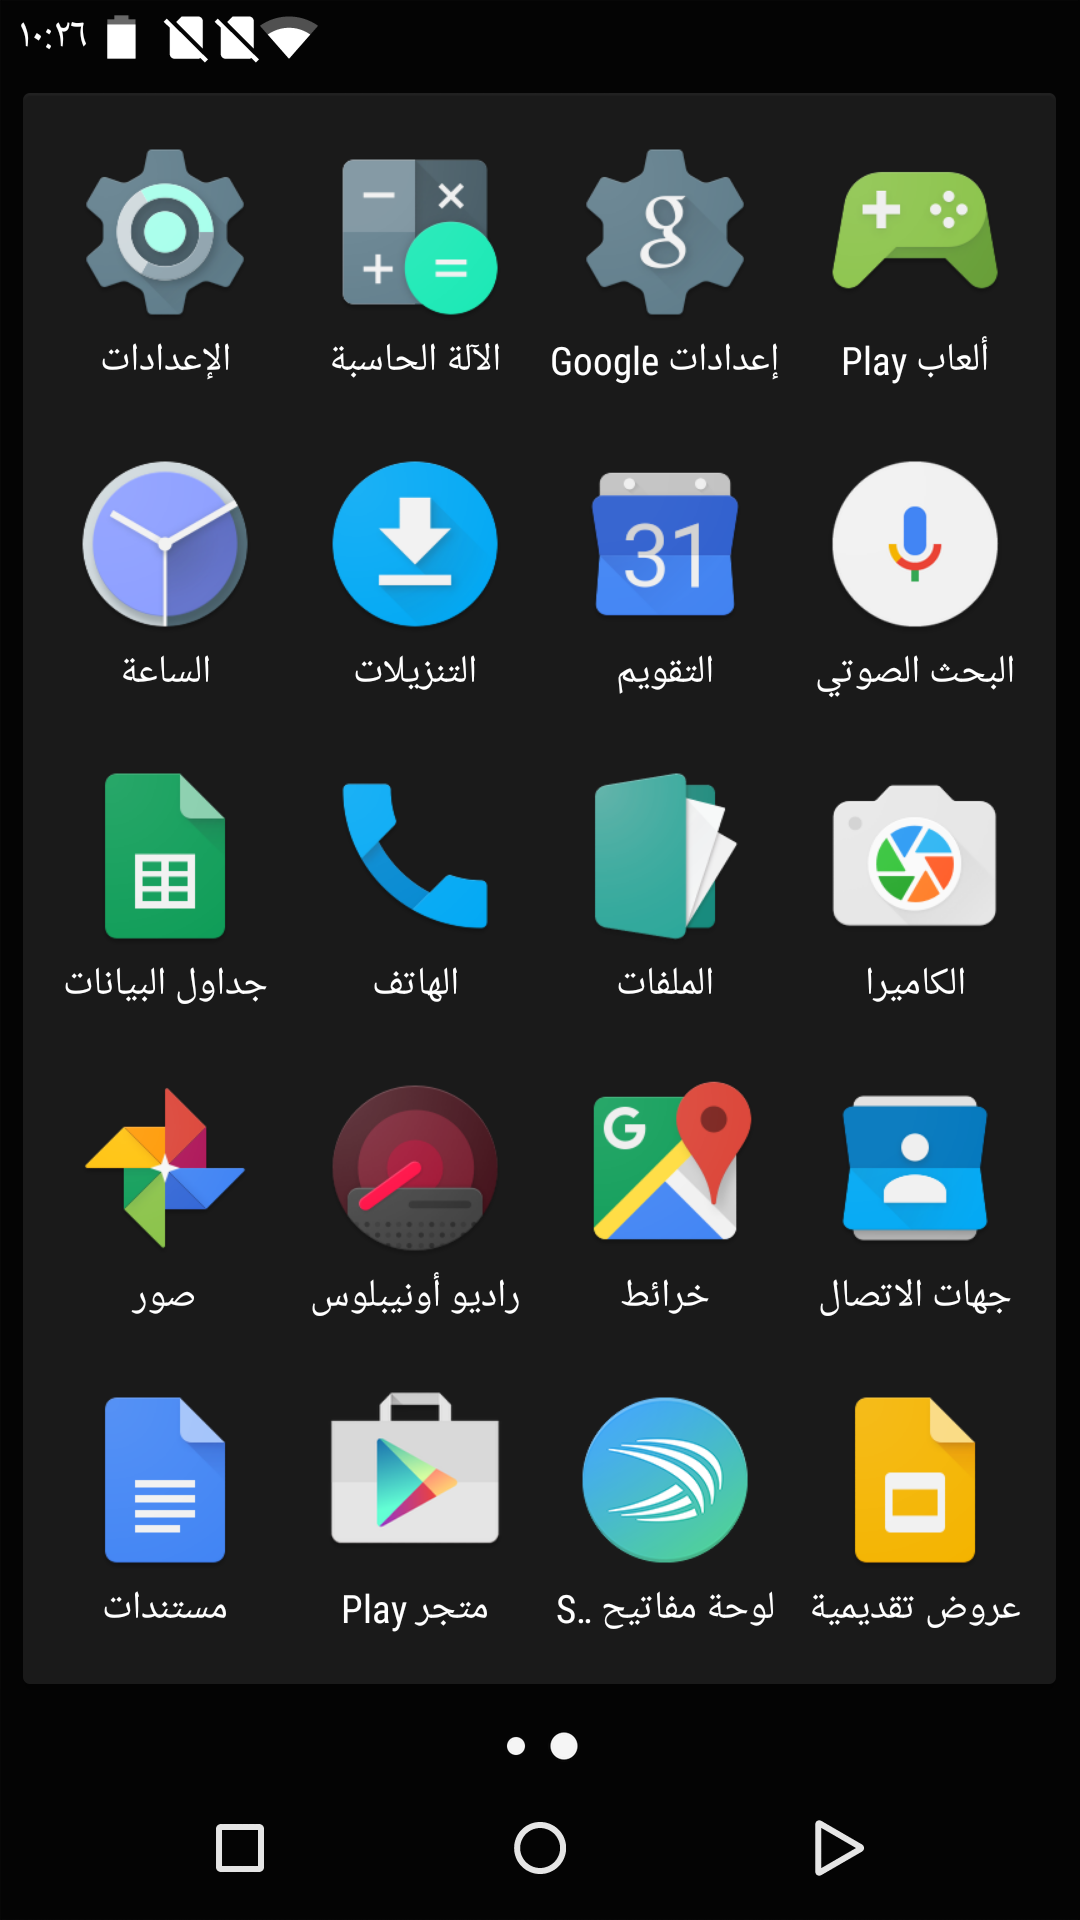 Screenshot_٢٠١٥-١١-٢٠-٢٢-٢٦-١٢